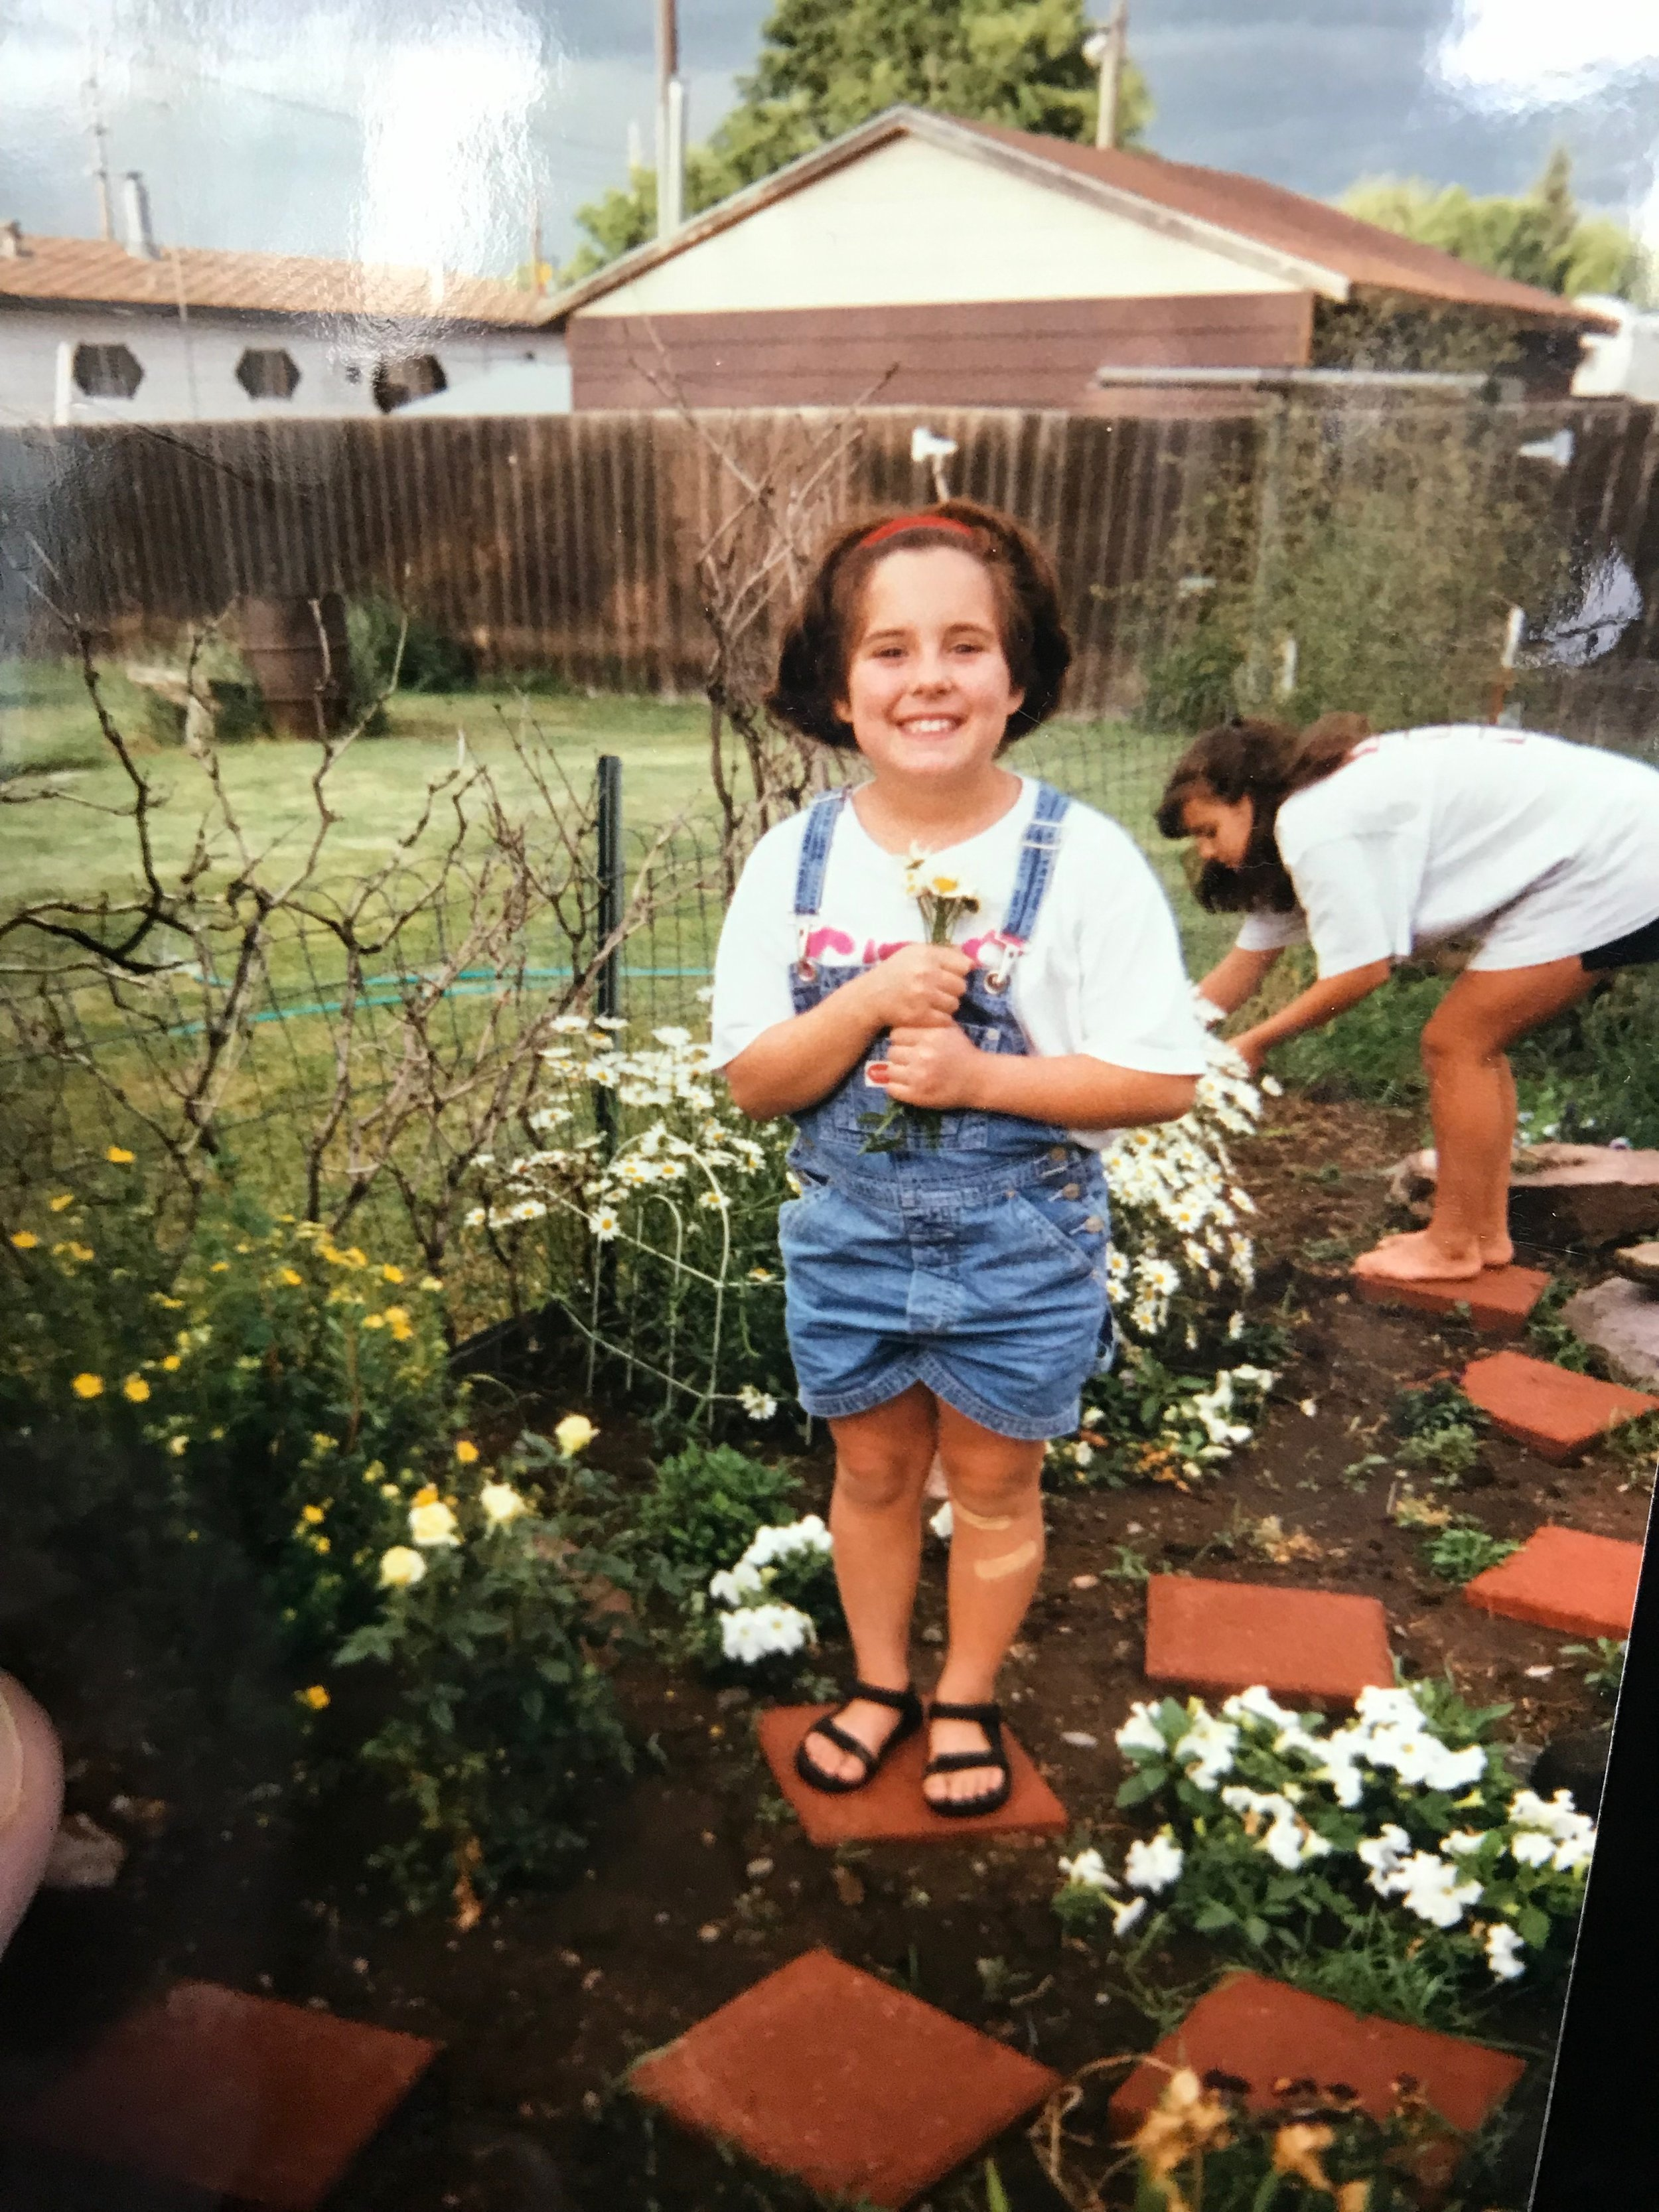 This was when spaghetti was my friend (and so were overalls, apparently).